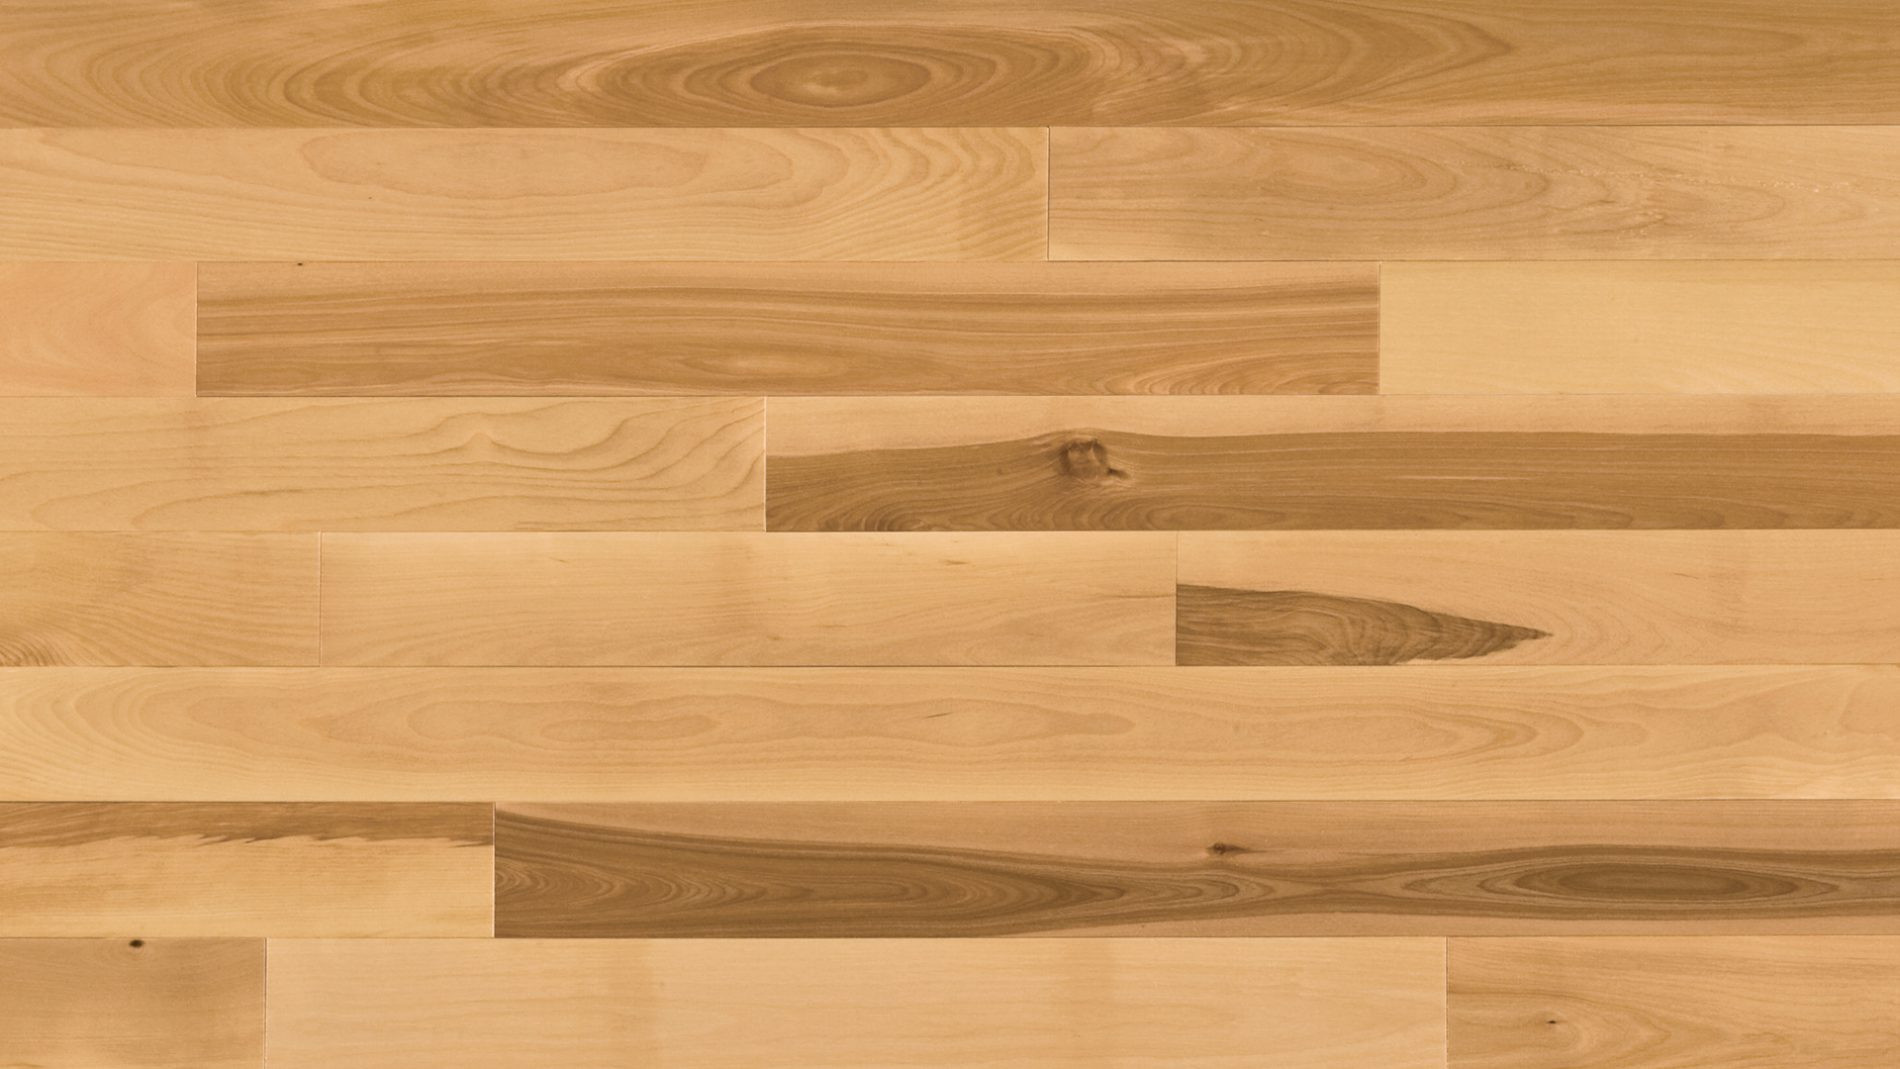 how to install bruce engineered hardwood flooring of lowes engineered wood flooring beautiful how much does lowes charge within lowes engineered wood flooring fresh hardwood floor design wood flooring waterproof laminate flooring of lowes engineered